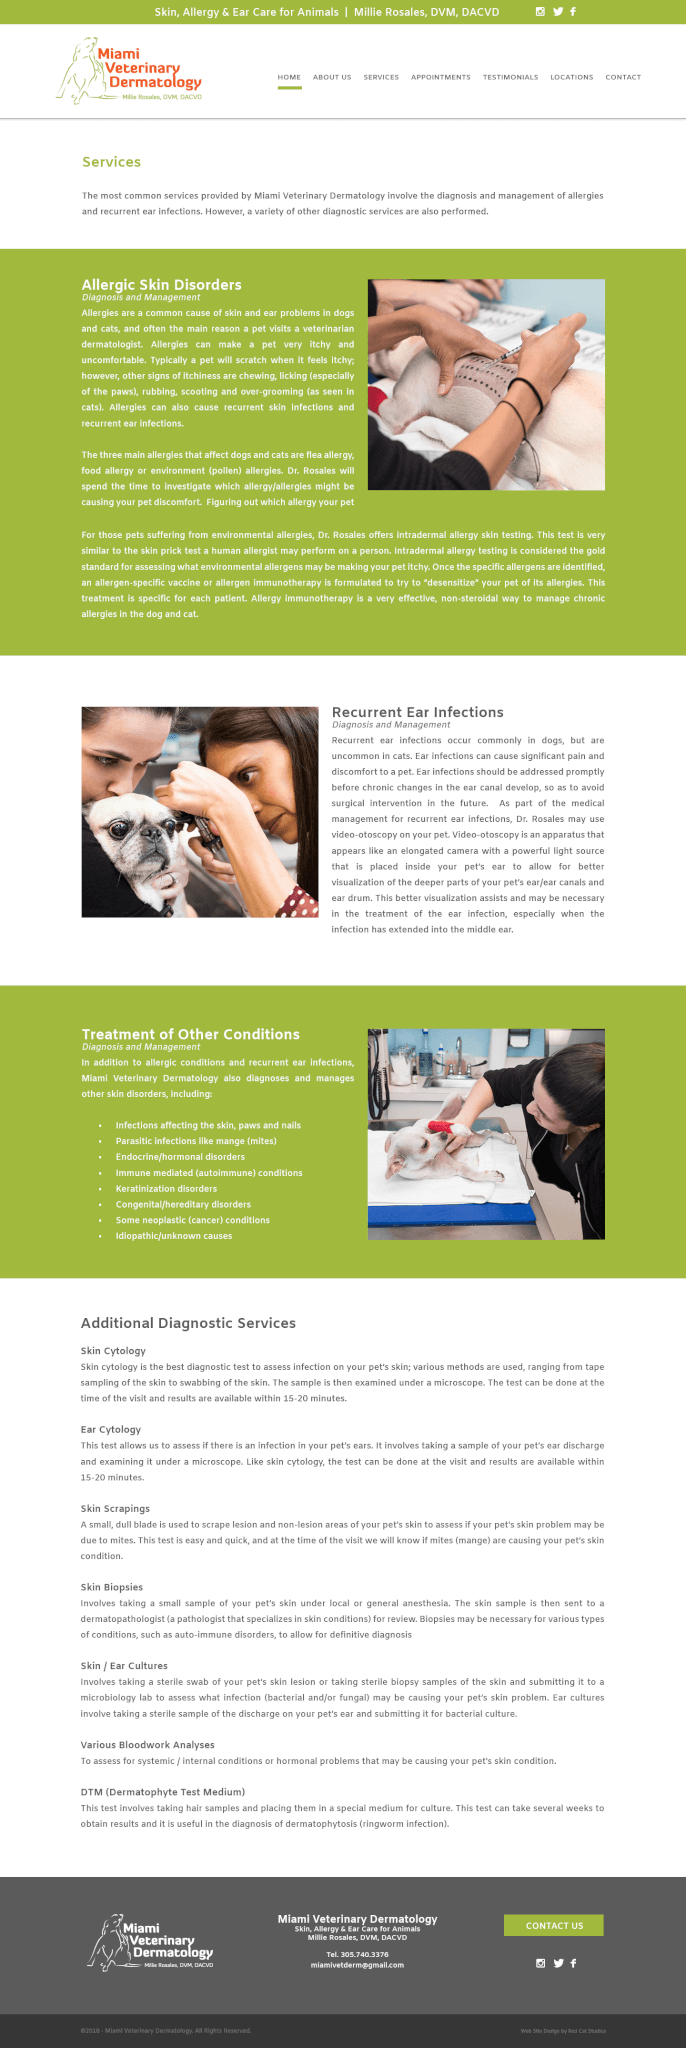 Veterinarian Web Design Miami